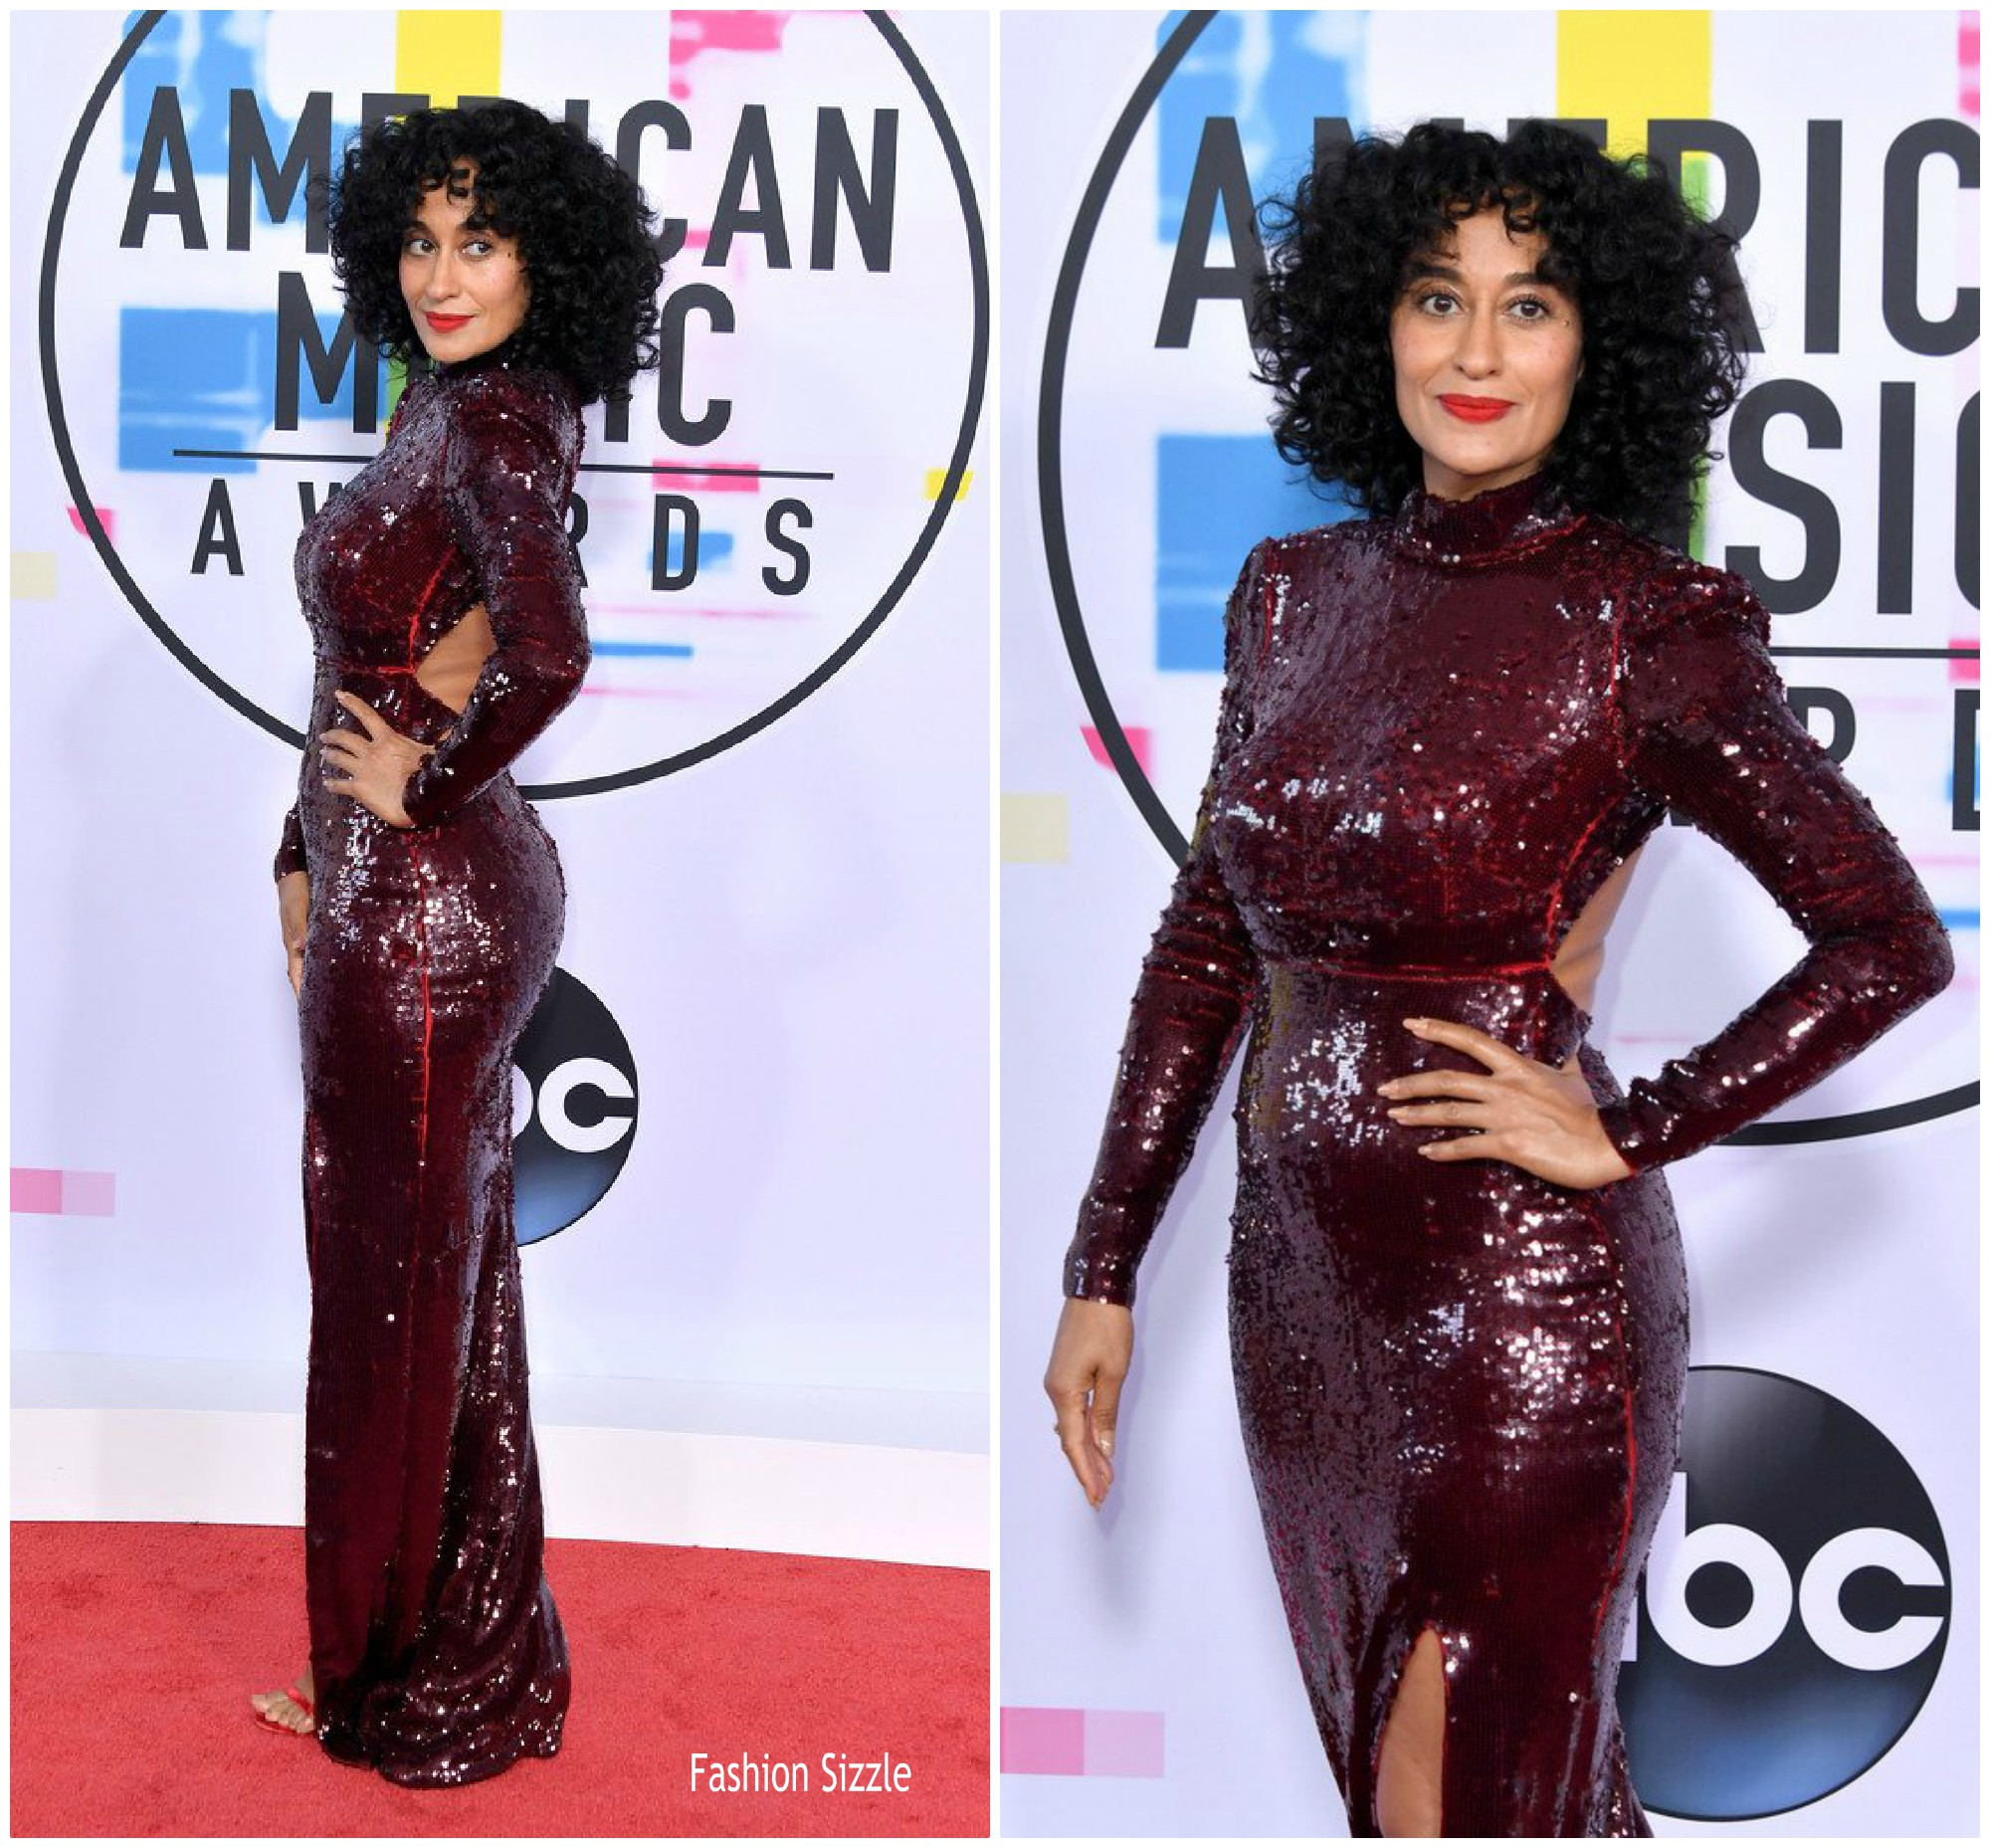 tracee-ellis-ross-stella-mccartney-2017-american-music-awards